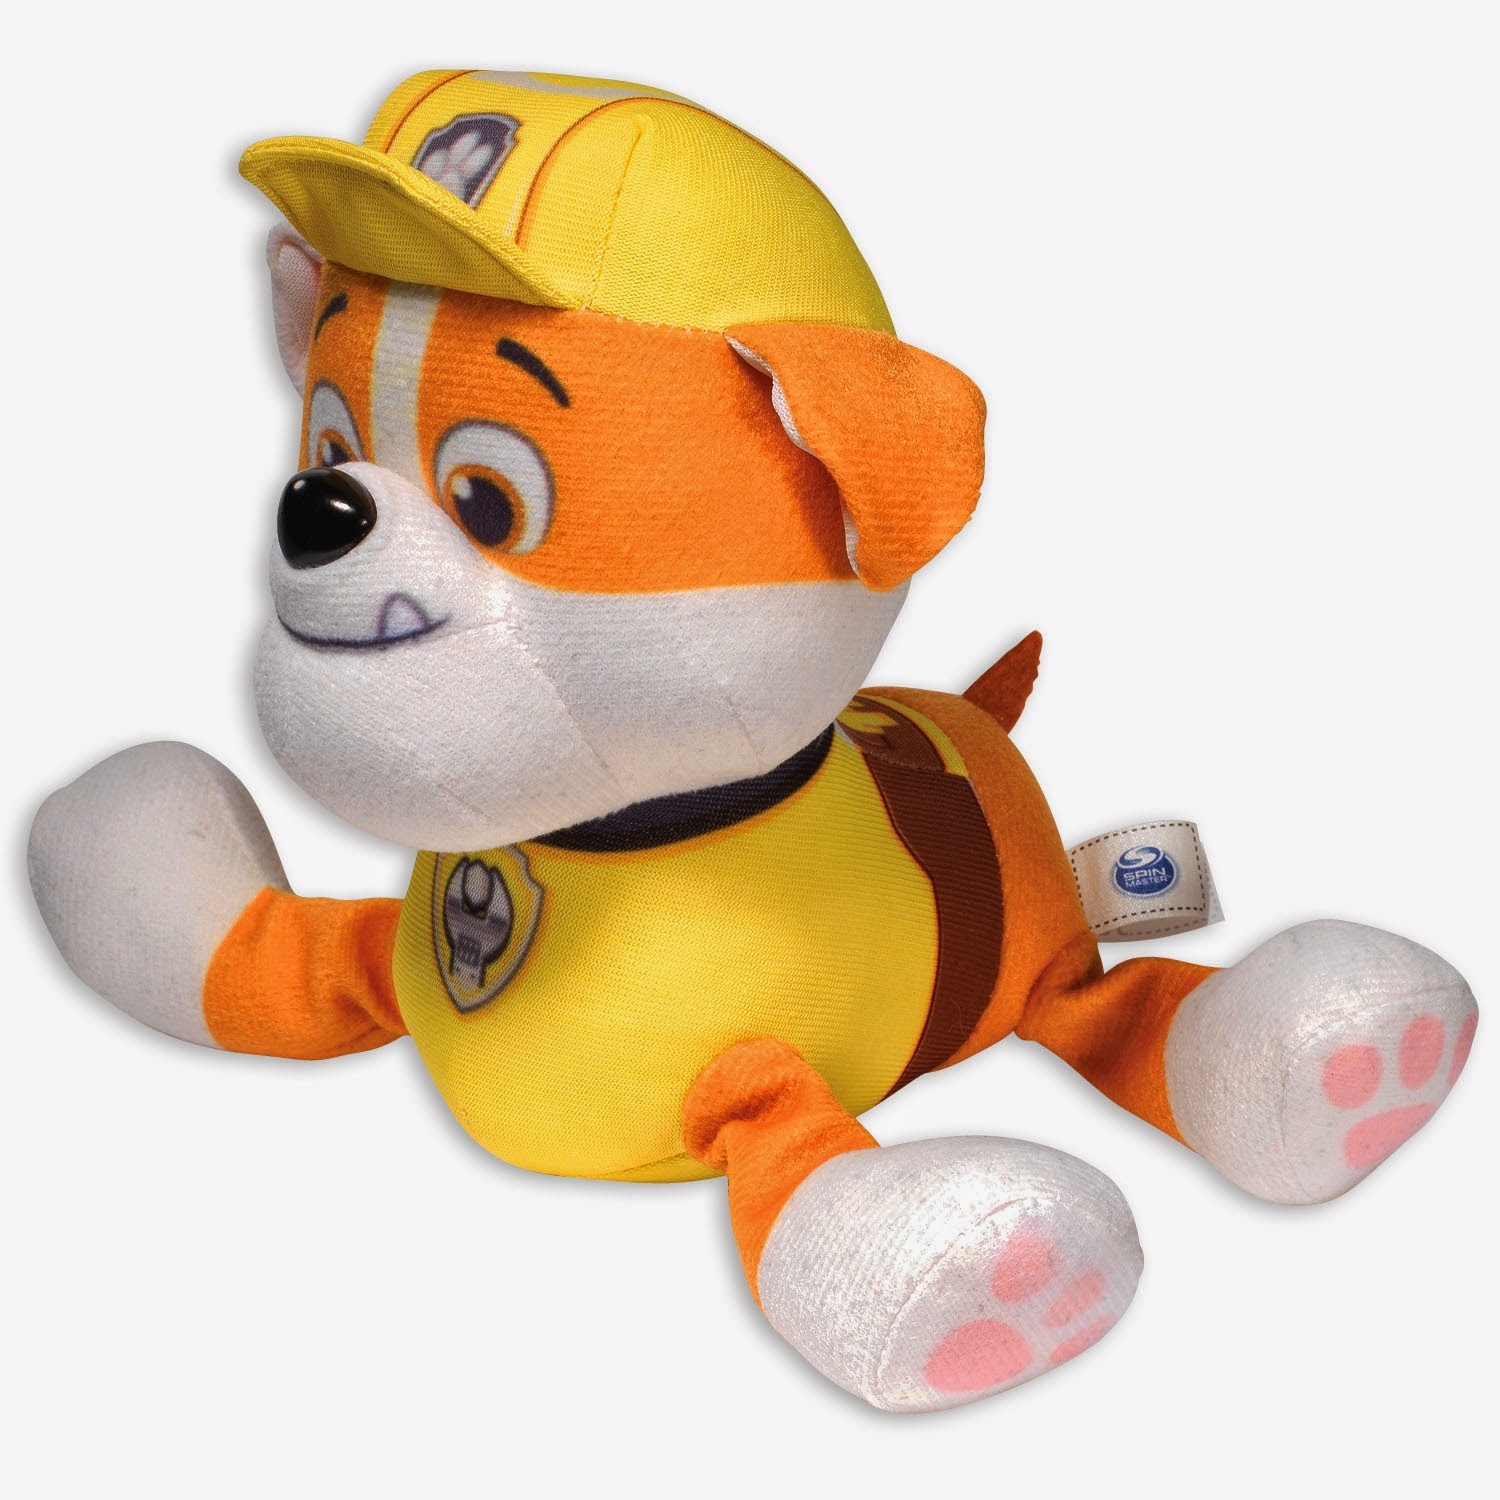 Rubble PAW Patrol Toy